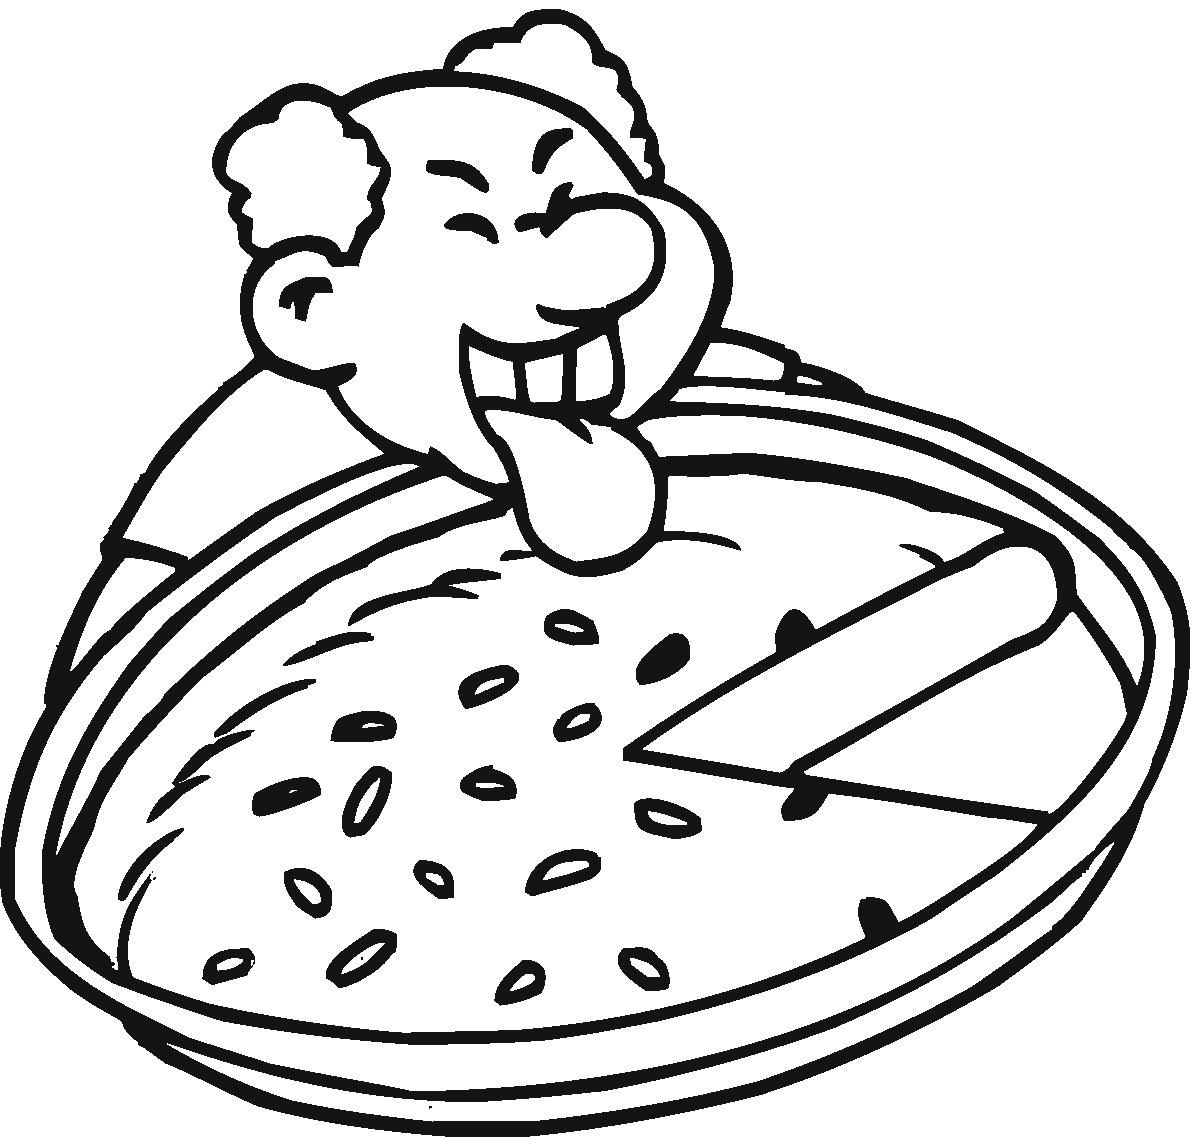 Cheese Pizza Coloring Page Clipart Panda